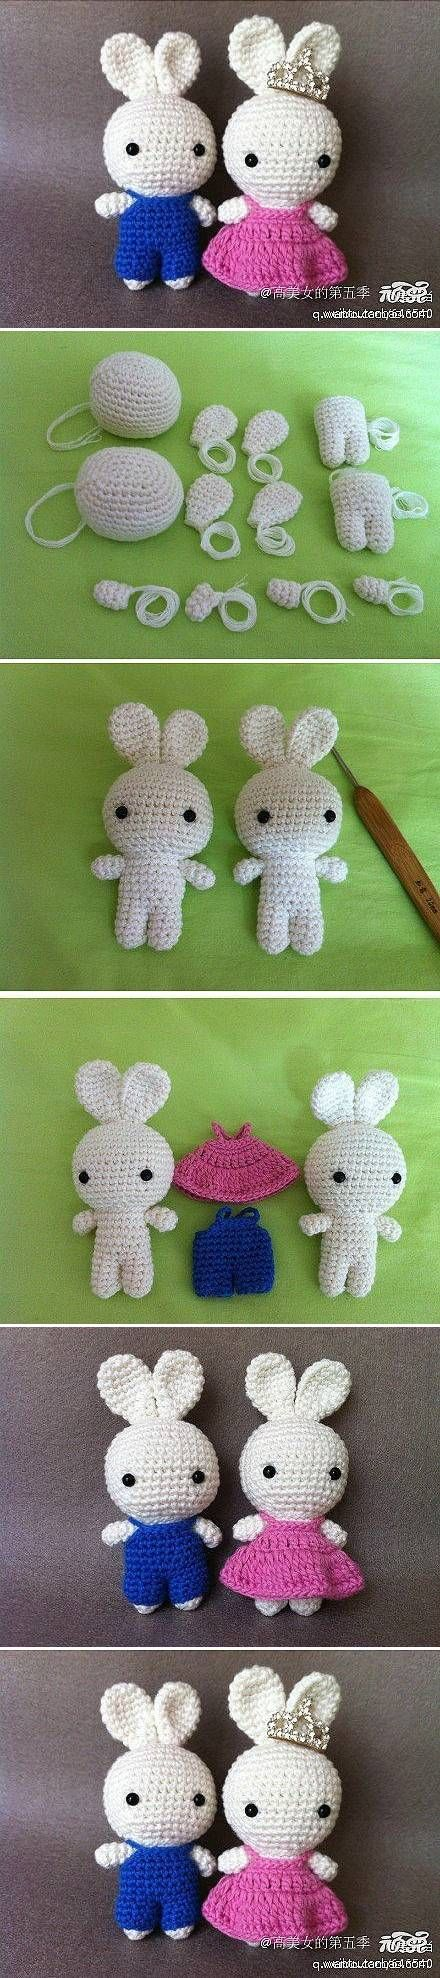 DIY Cute Crochet Bunny Couple